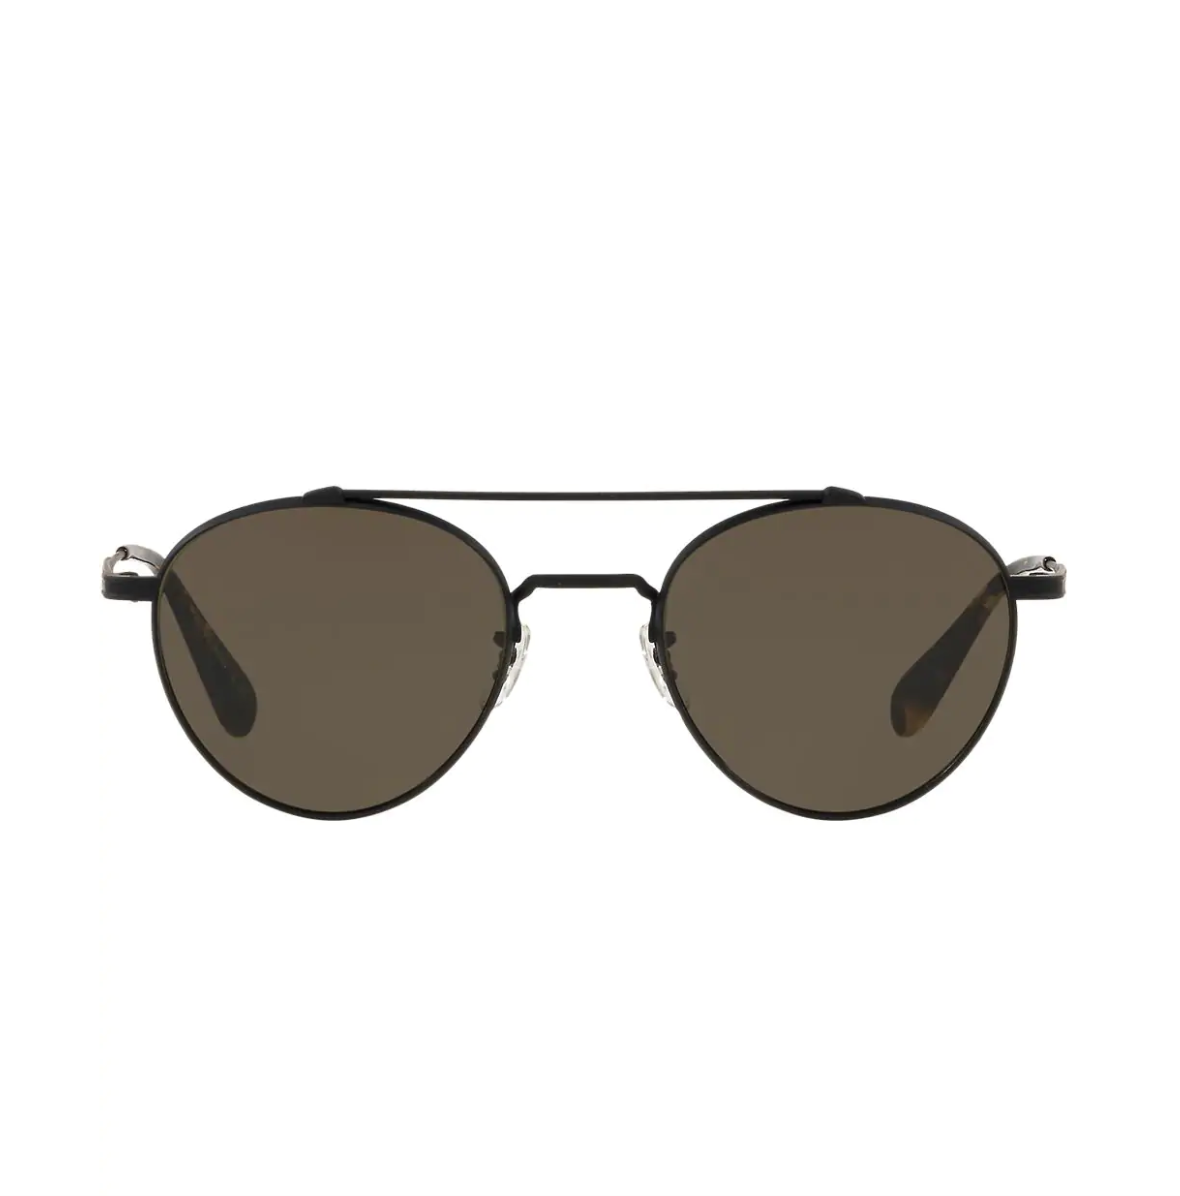 $590 - Oliver Peoples Watts sunglasses   Oliver Peoples makes some of my favorite sunglasses! I love a round frame and think they look good on most face shapes. I love the brown-ish color of these too! They'll definitely stand out and make anything you're wearing look good!